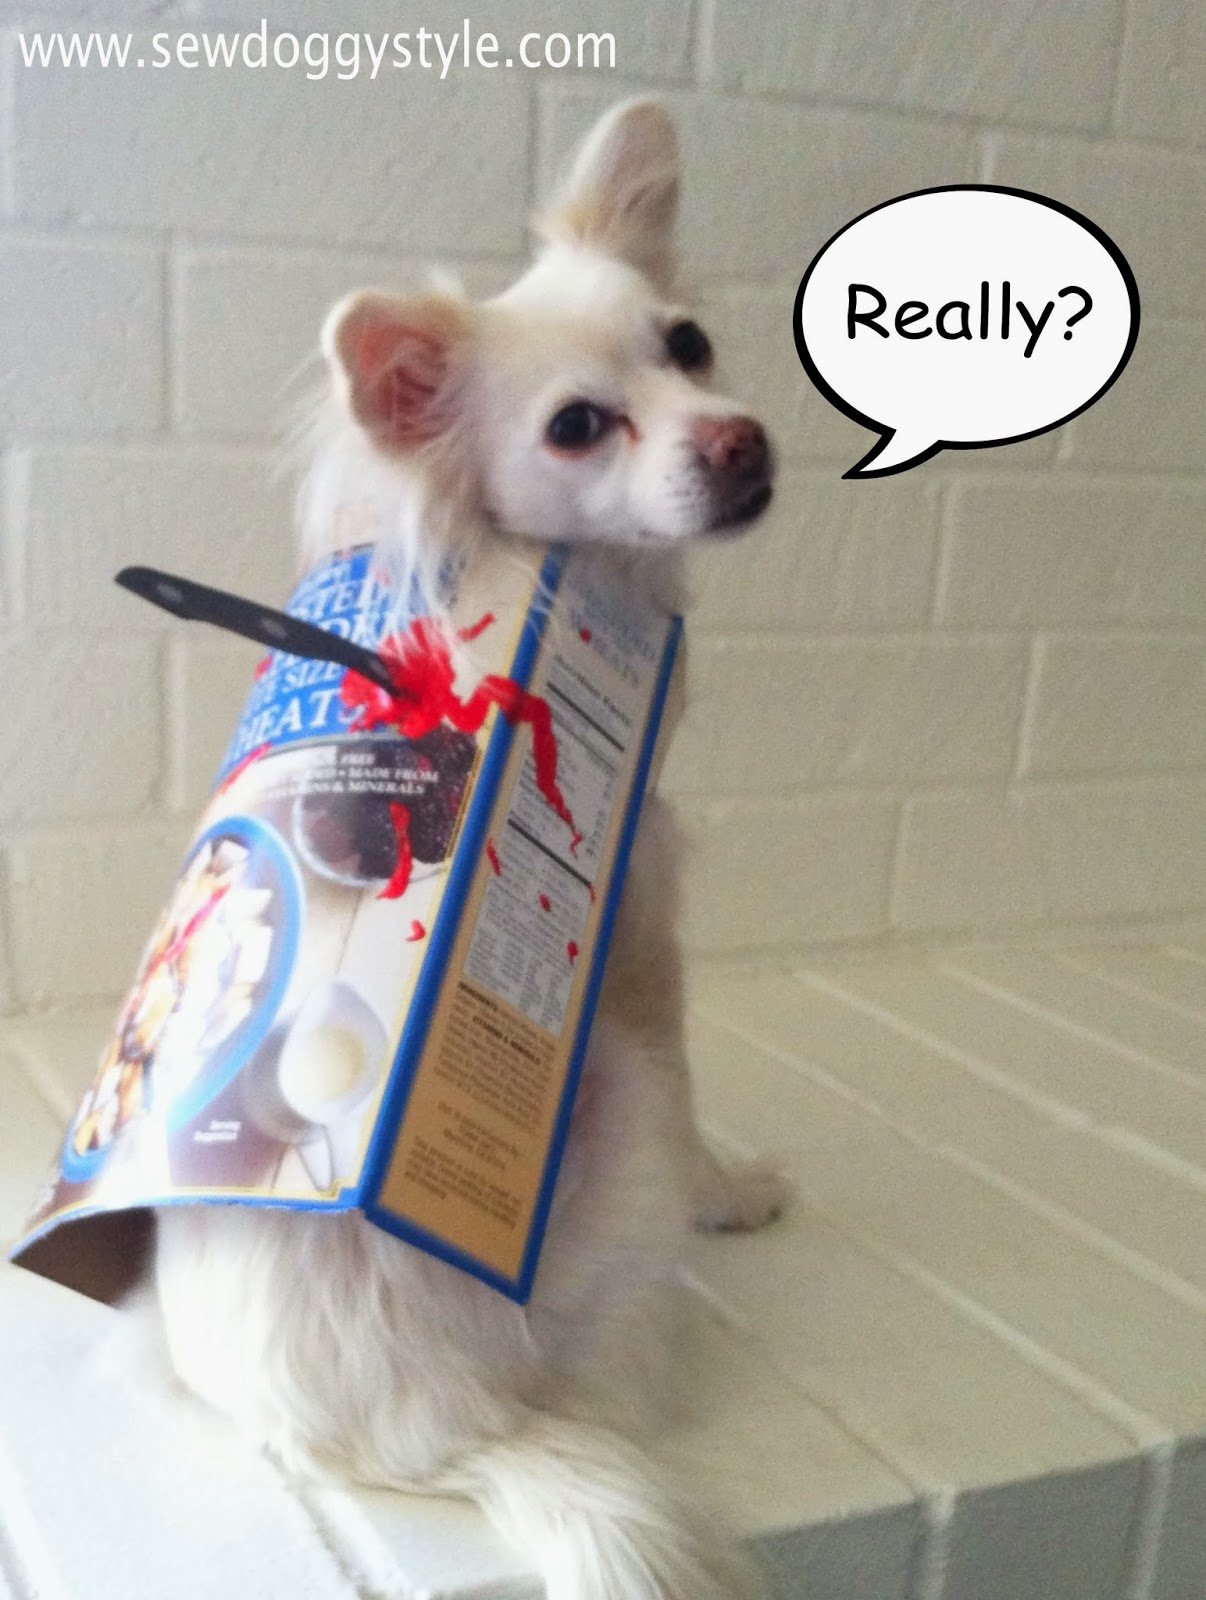 & Sew DoggyStyle: Last Minute DIY Halloween Costume - Cereal Killer!